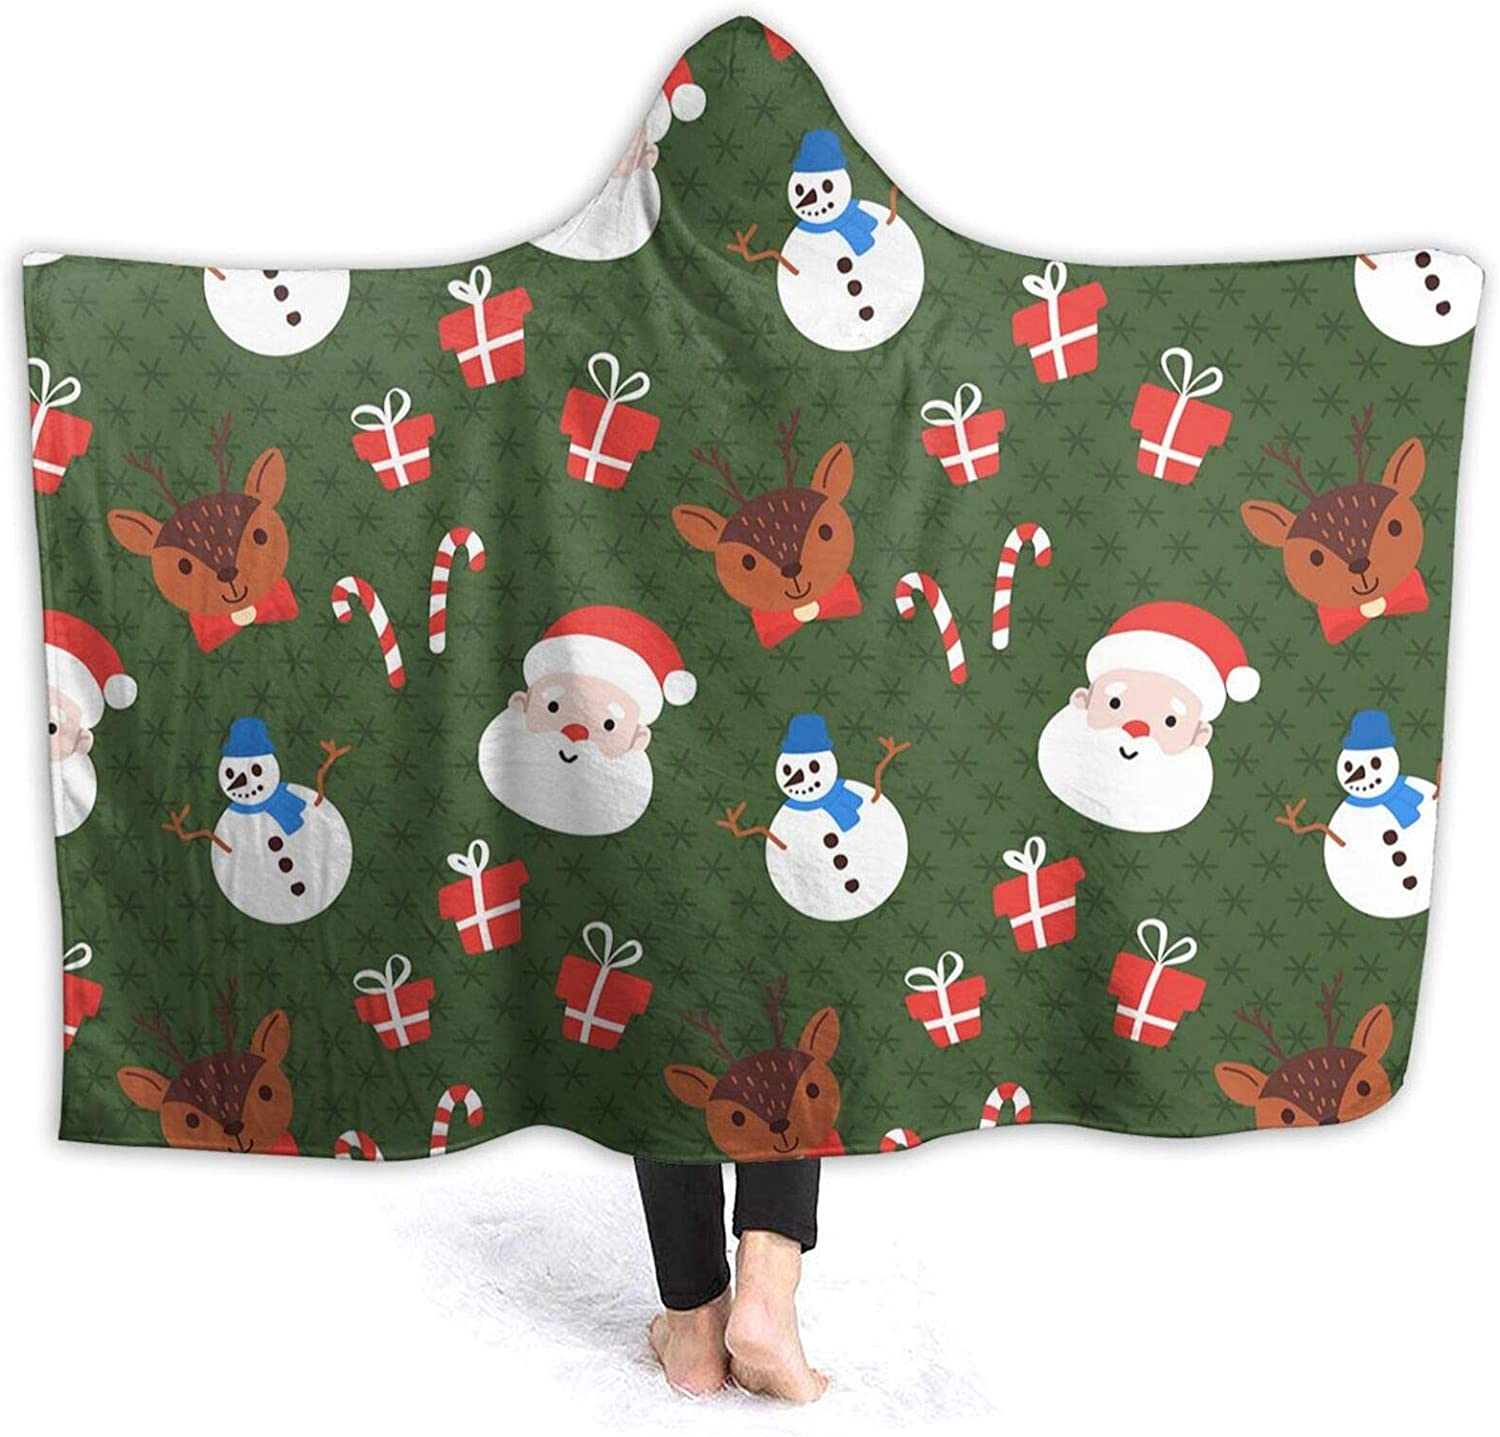 Max 85% OFF Funny Xmas Hooded Blanket Conditioning Throw Max 84% OFF Air